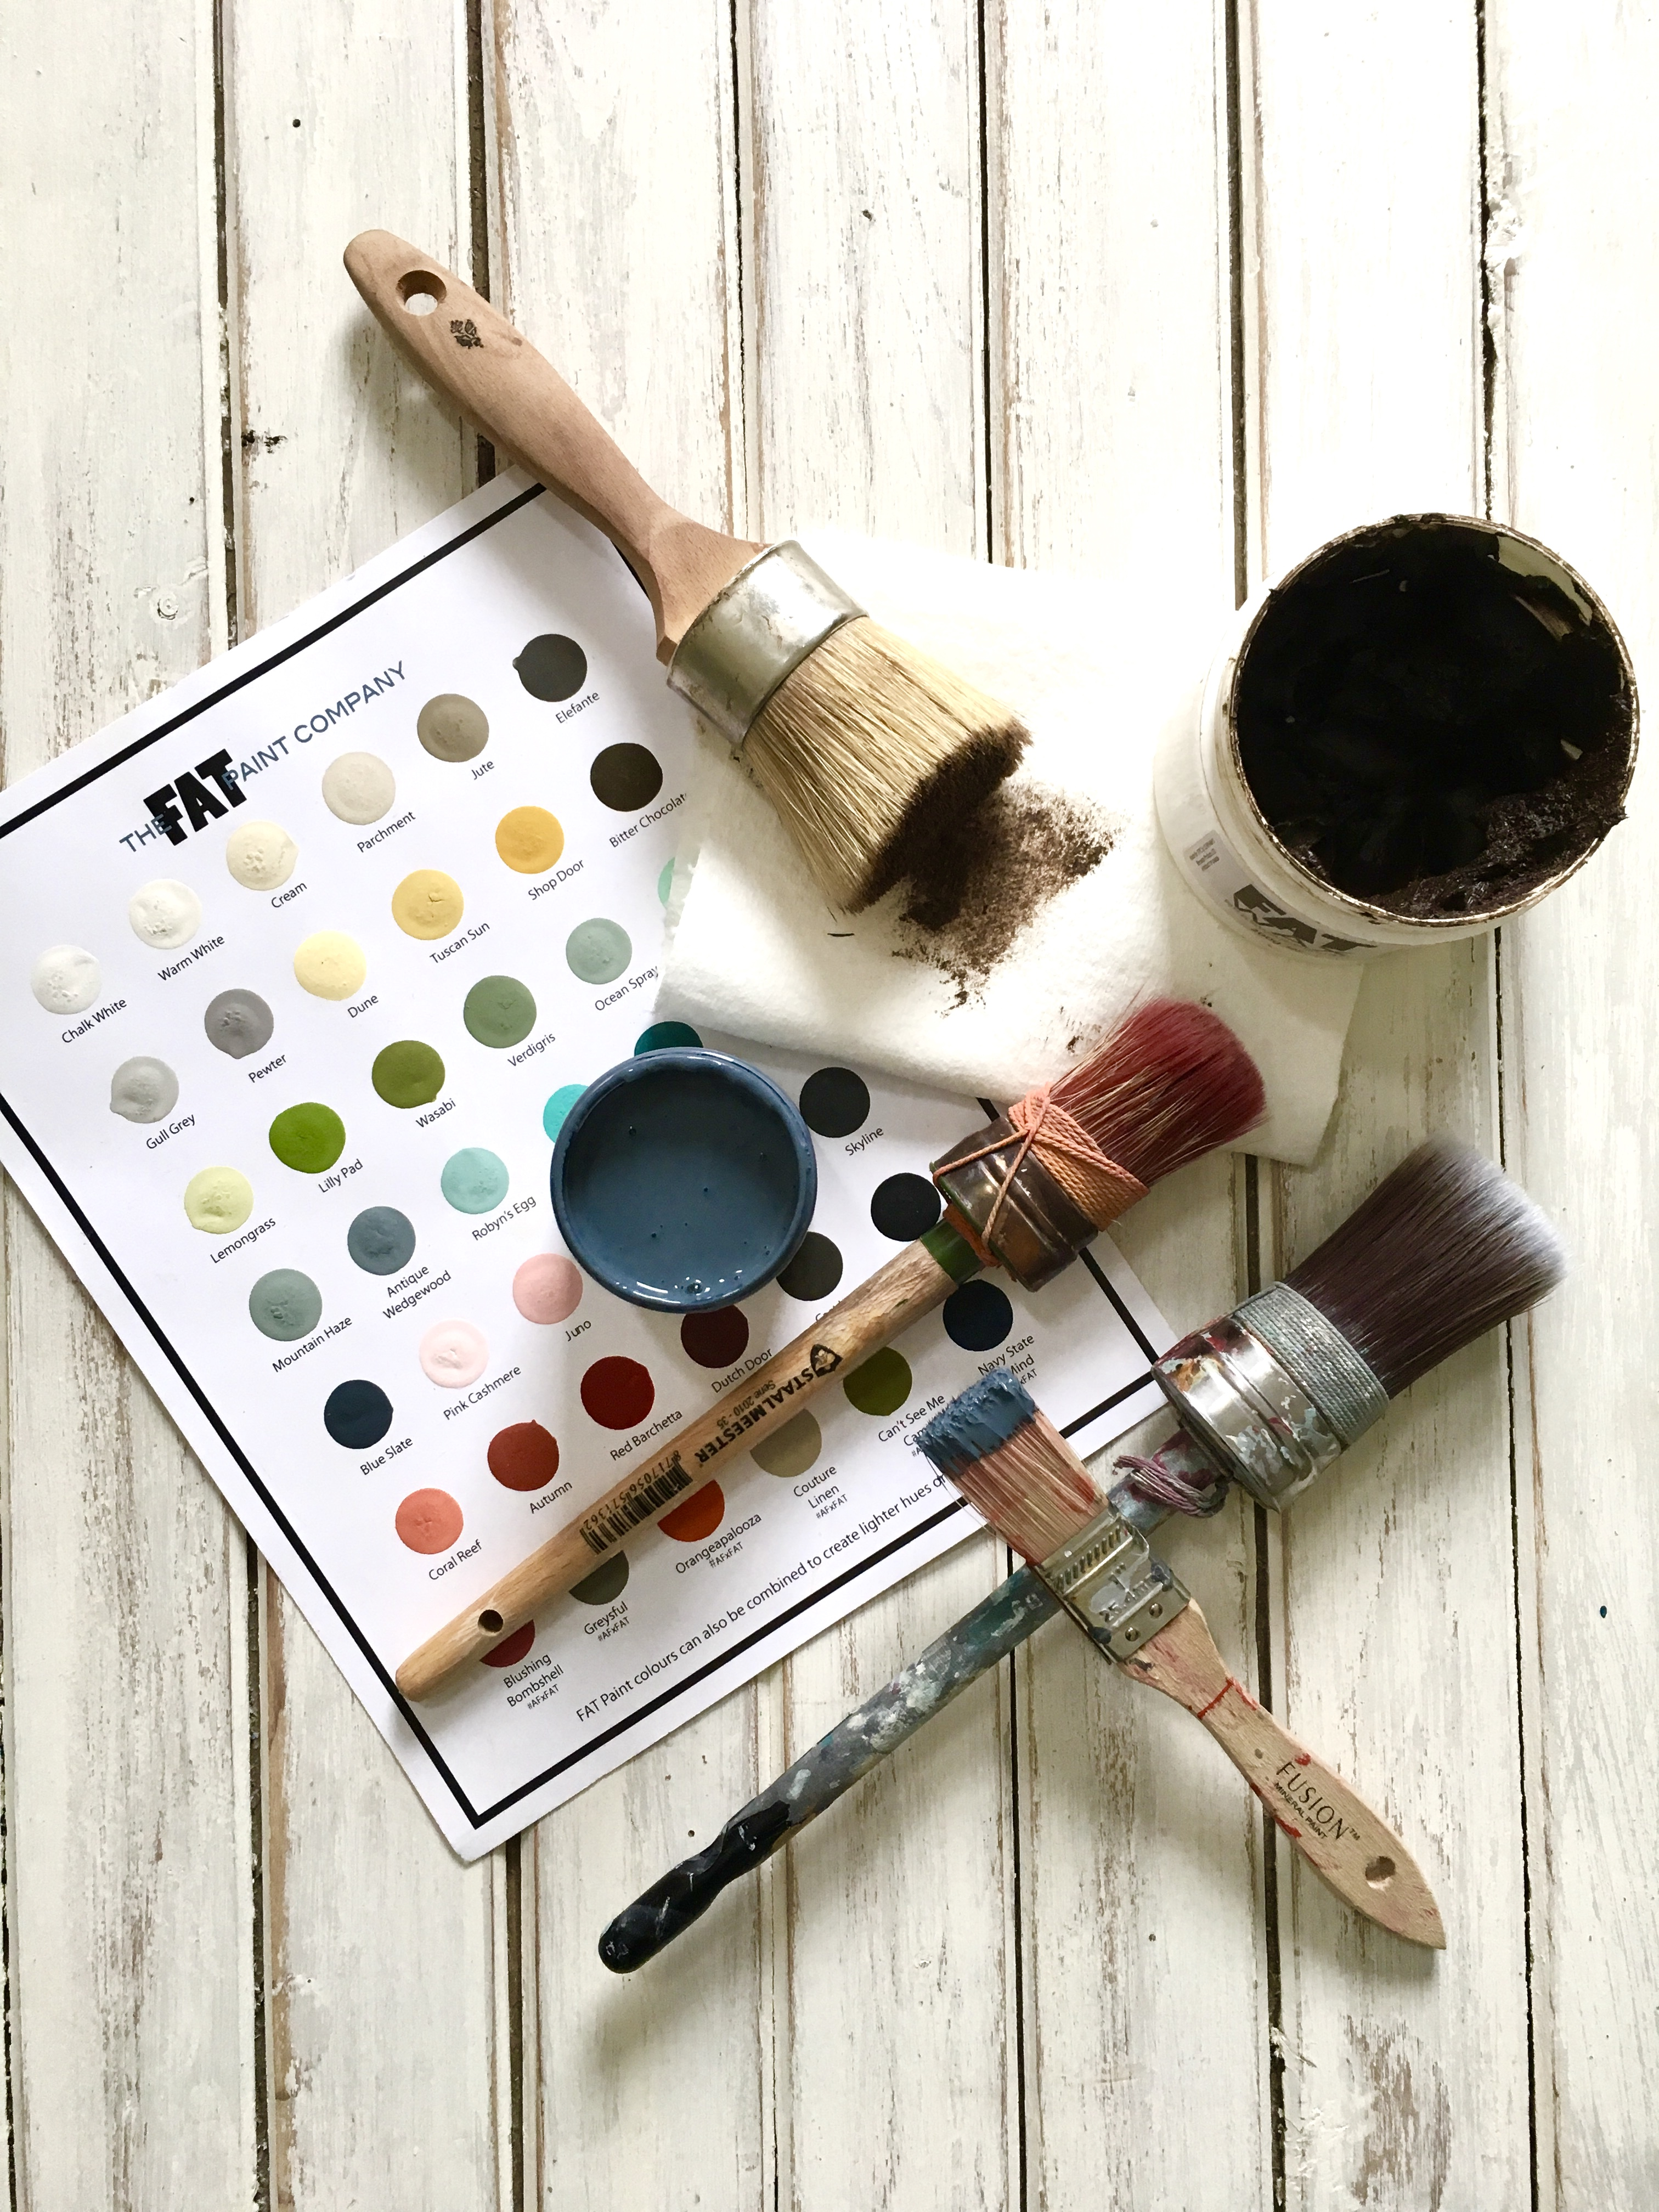 Lots of brushes and accesories avaiilable at Front Porch Mercantile